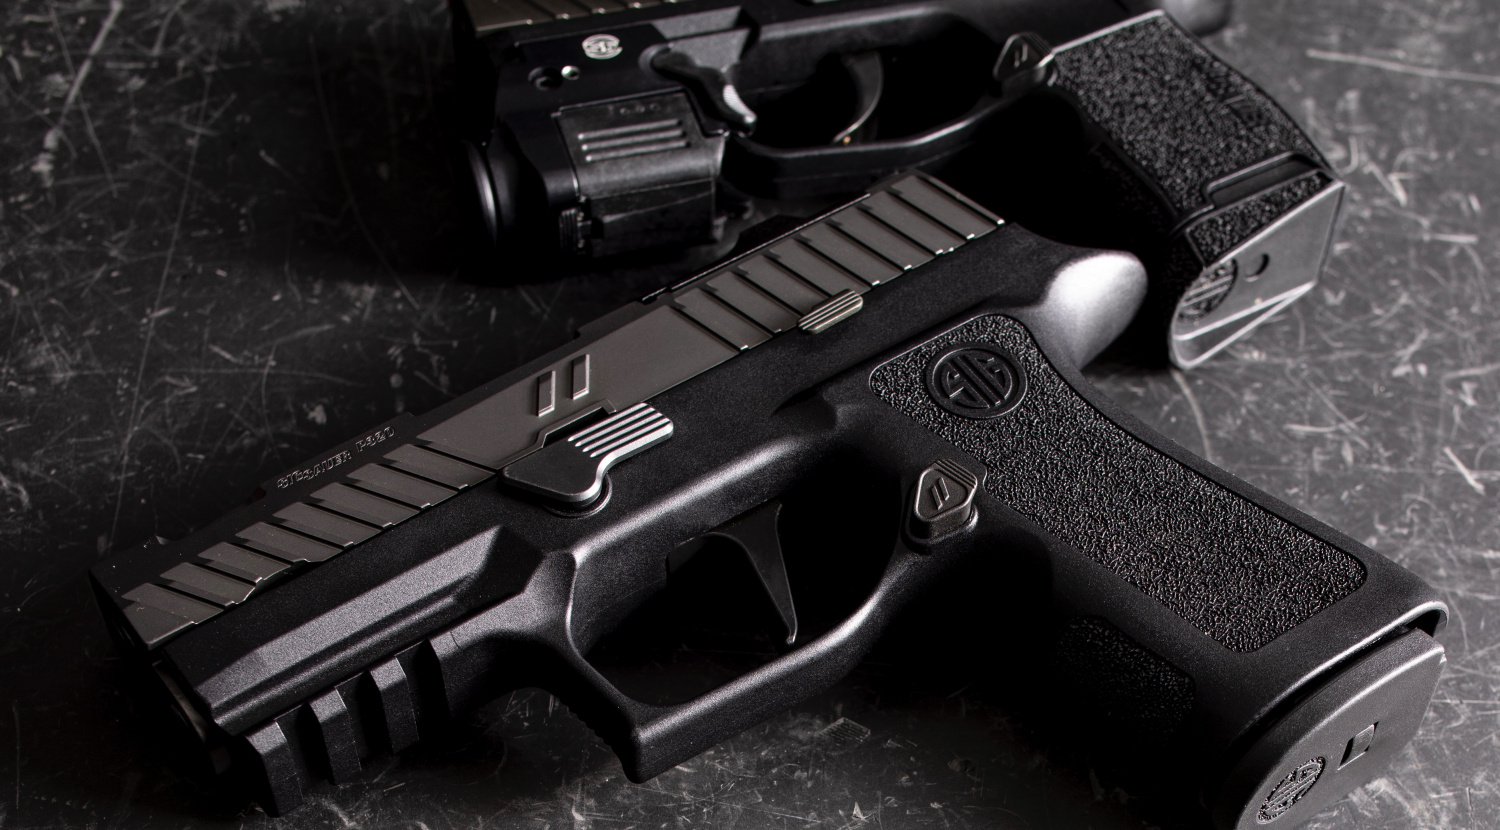 ZEV Technologies Releases New Glock, SIG, and AR-15 Accessories